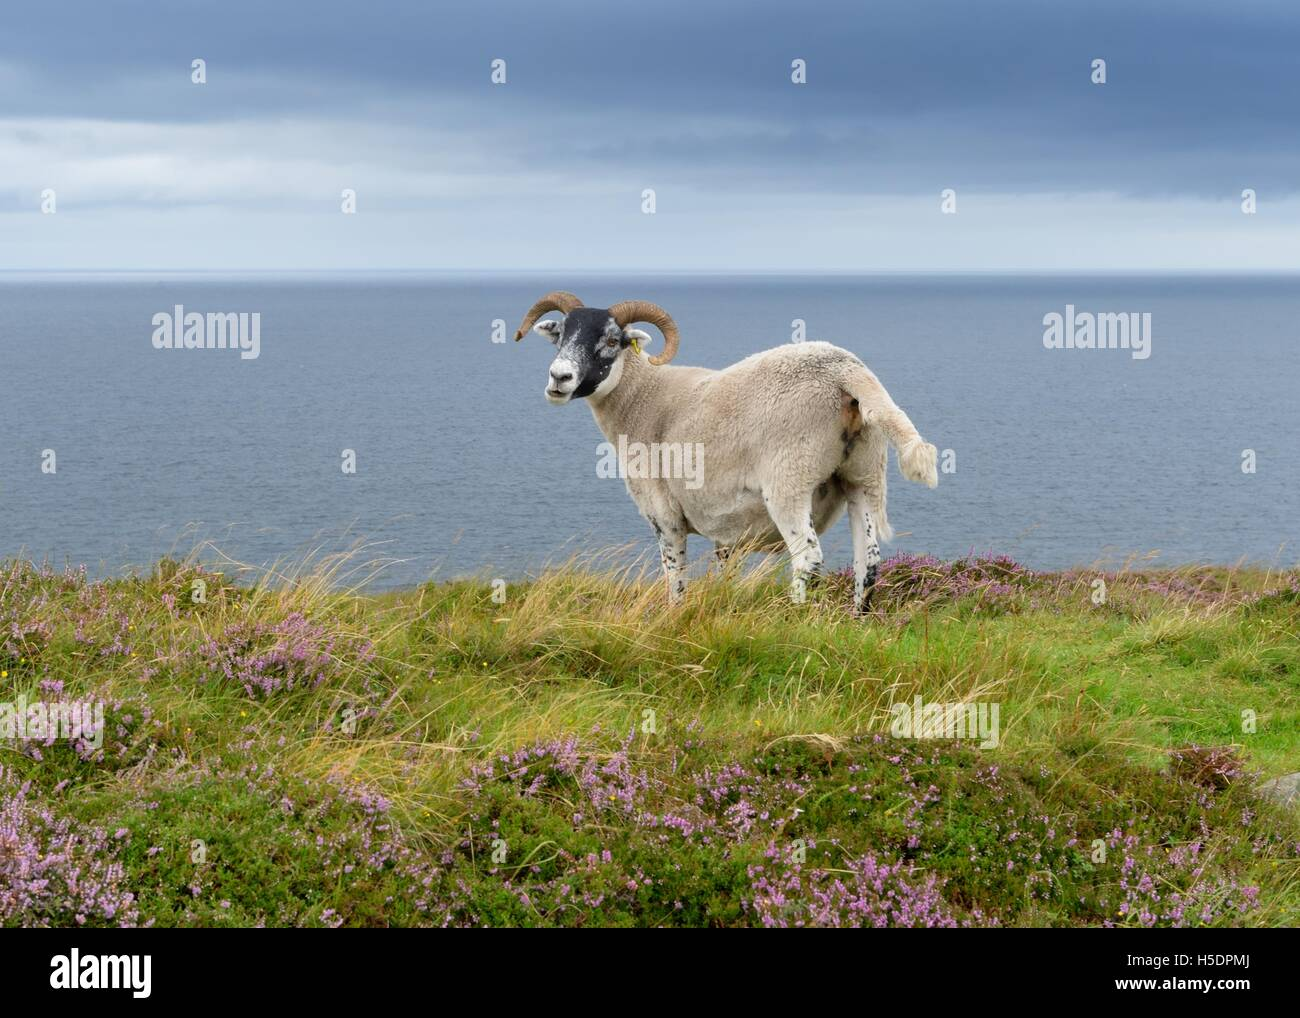 The Scottish Blackface sheep standing on hill with the sea behind it in Highland, Scotland, UK Stock Photo